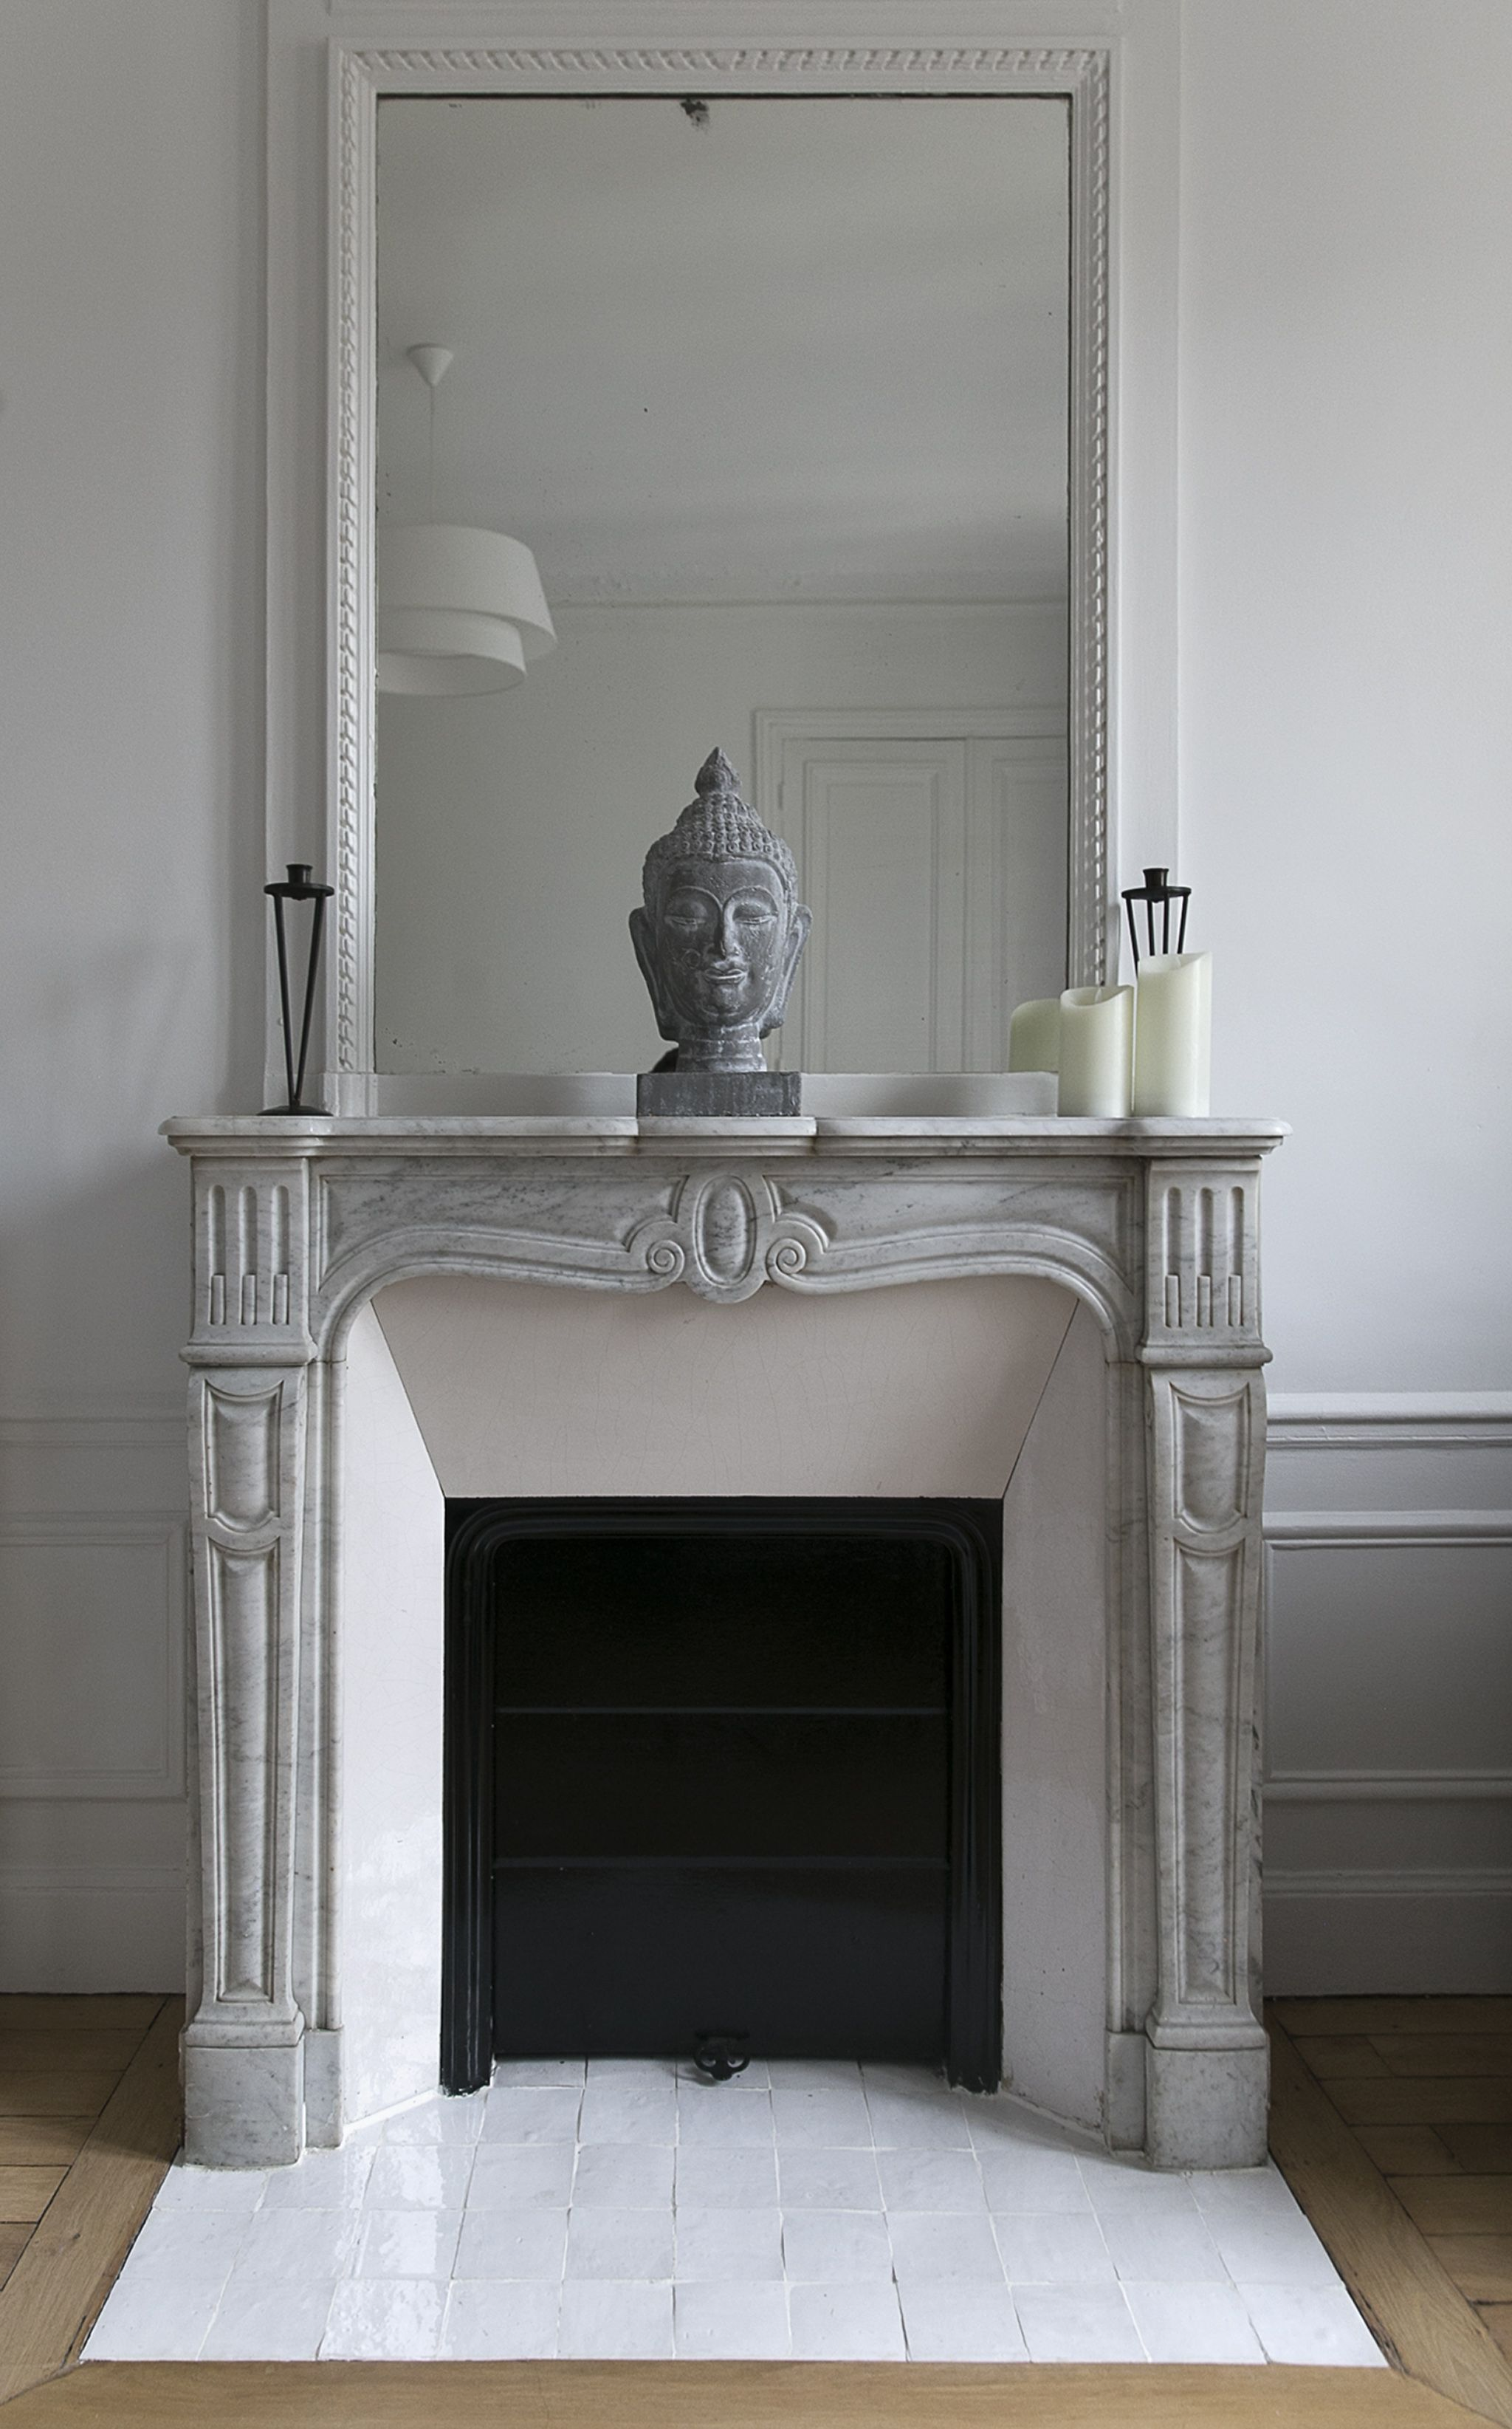 argentine gcg architectes fireplace pinterest salons fire places and foyers. Black Bedroom Furniture Sets. Home Design Ideas